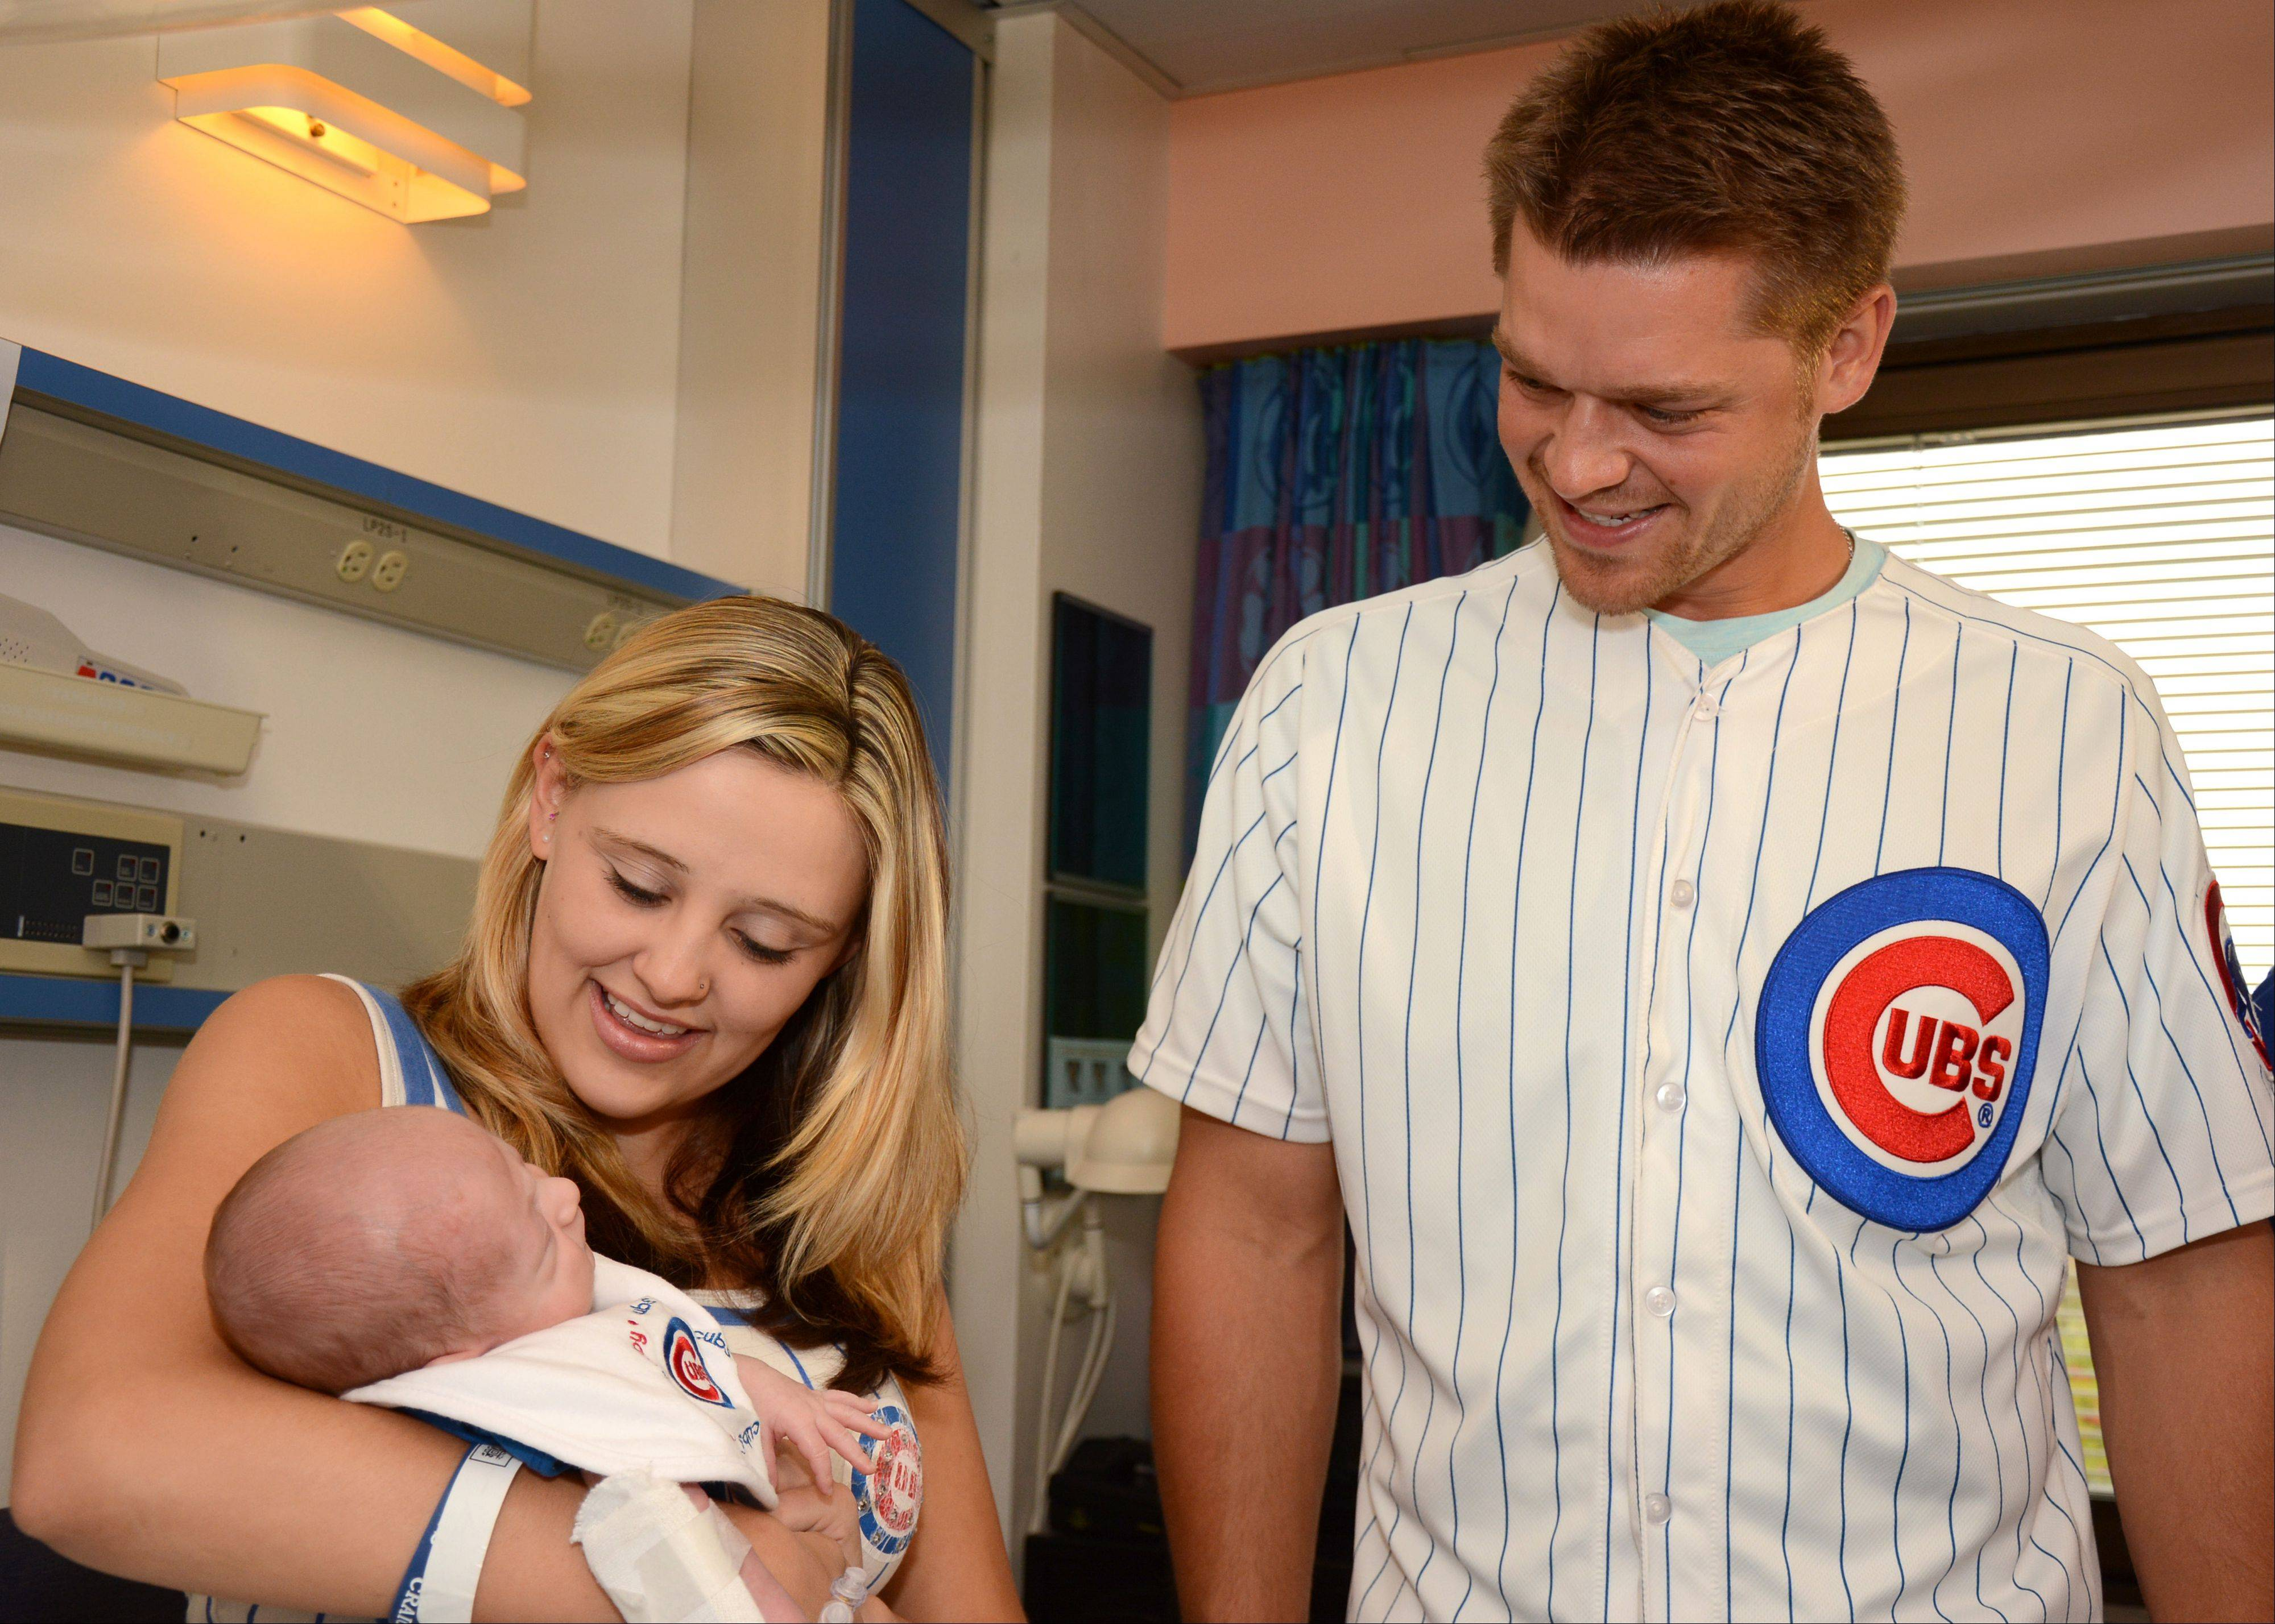 Brook Aguilar holds up her 4-week-old son RyLee Cash Capra to meet Chicago Cubs pitcher Michael Bowden on Monday during his visit to Advocate Children's Hospital in Park Ridge. Aguilar said she rushed home Sunday night after learning of the visit to get the family's Cubs gear.